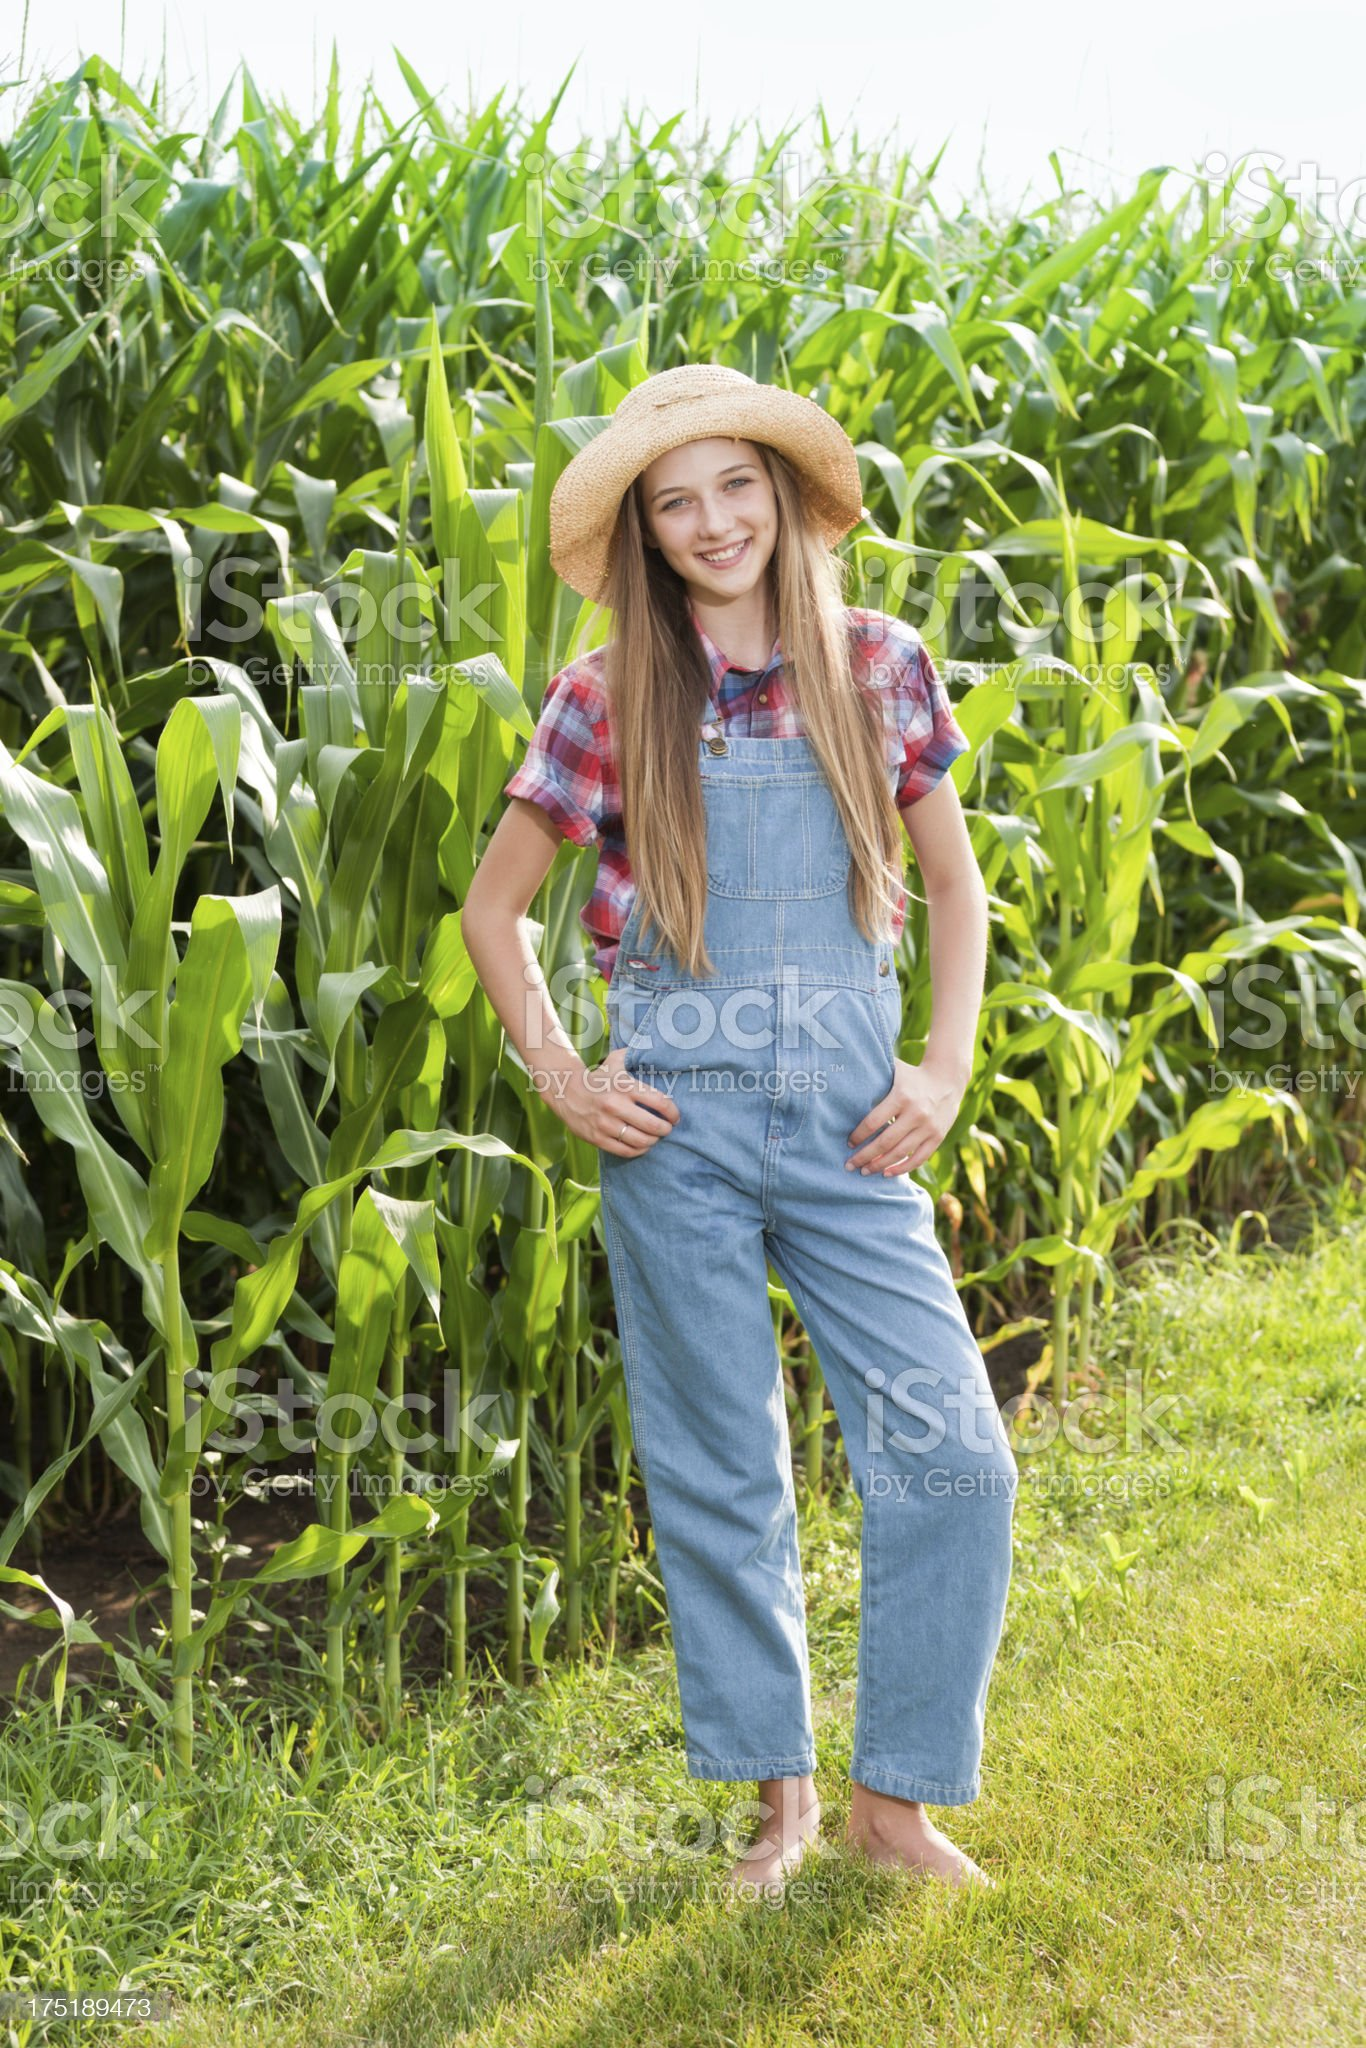 http://media.istockphoto.com/photos/portrait-of-young-farmer-girl-by-the-farm-field-vt-picture-id175189473?s=2048x2048